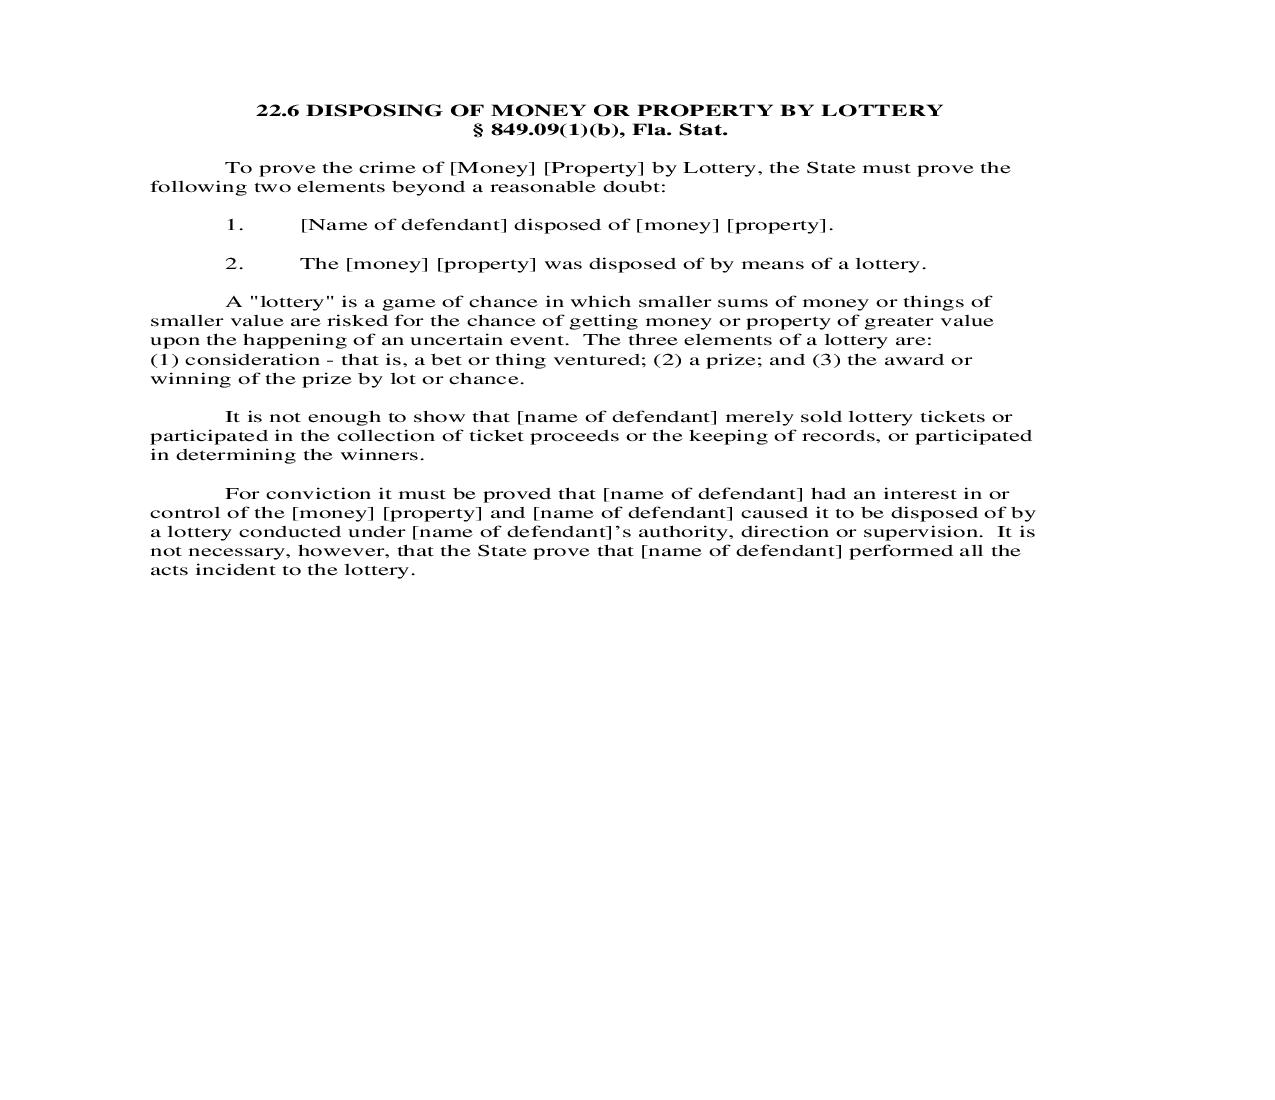 22.6. Disposing Of Money Or Property By Lottery | Pdf Doc Docx | Florida_JI